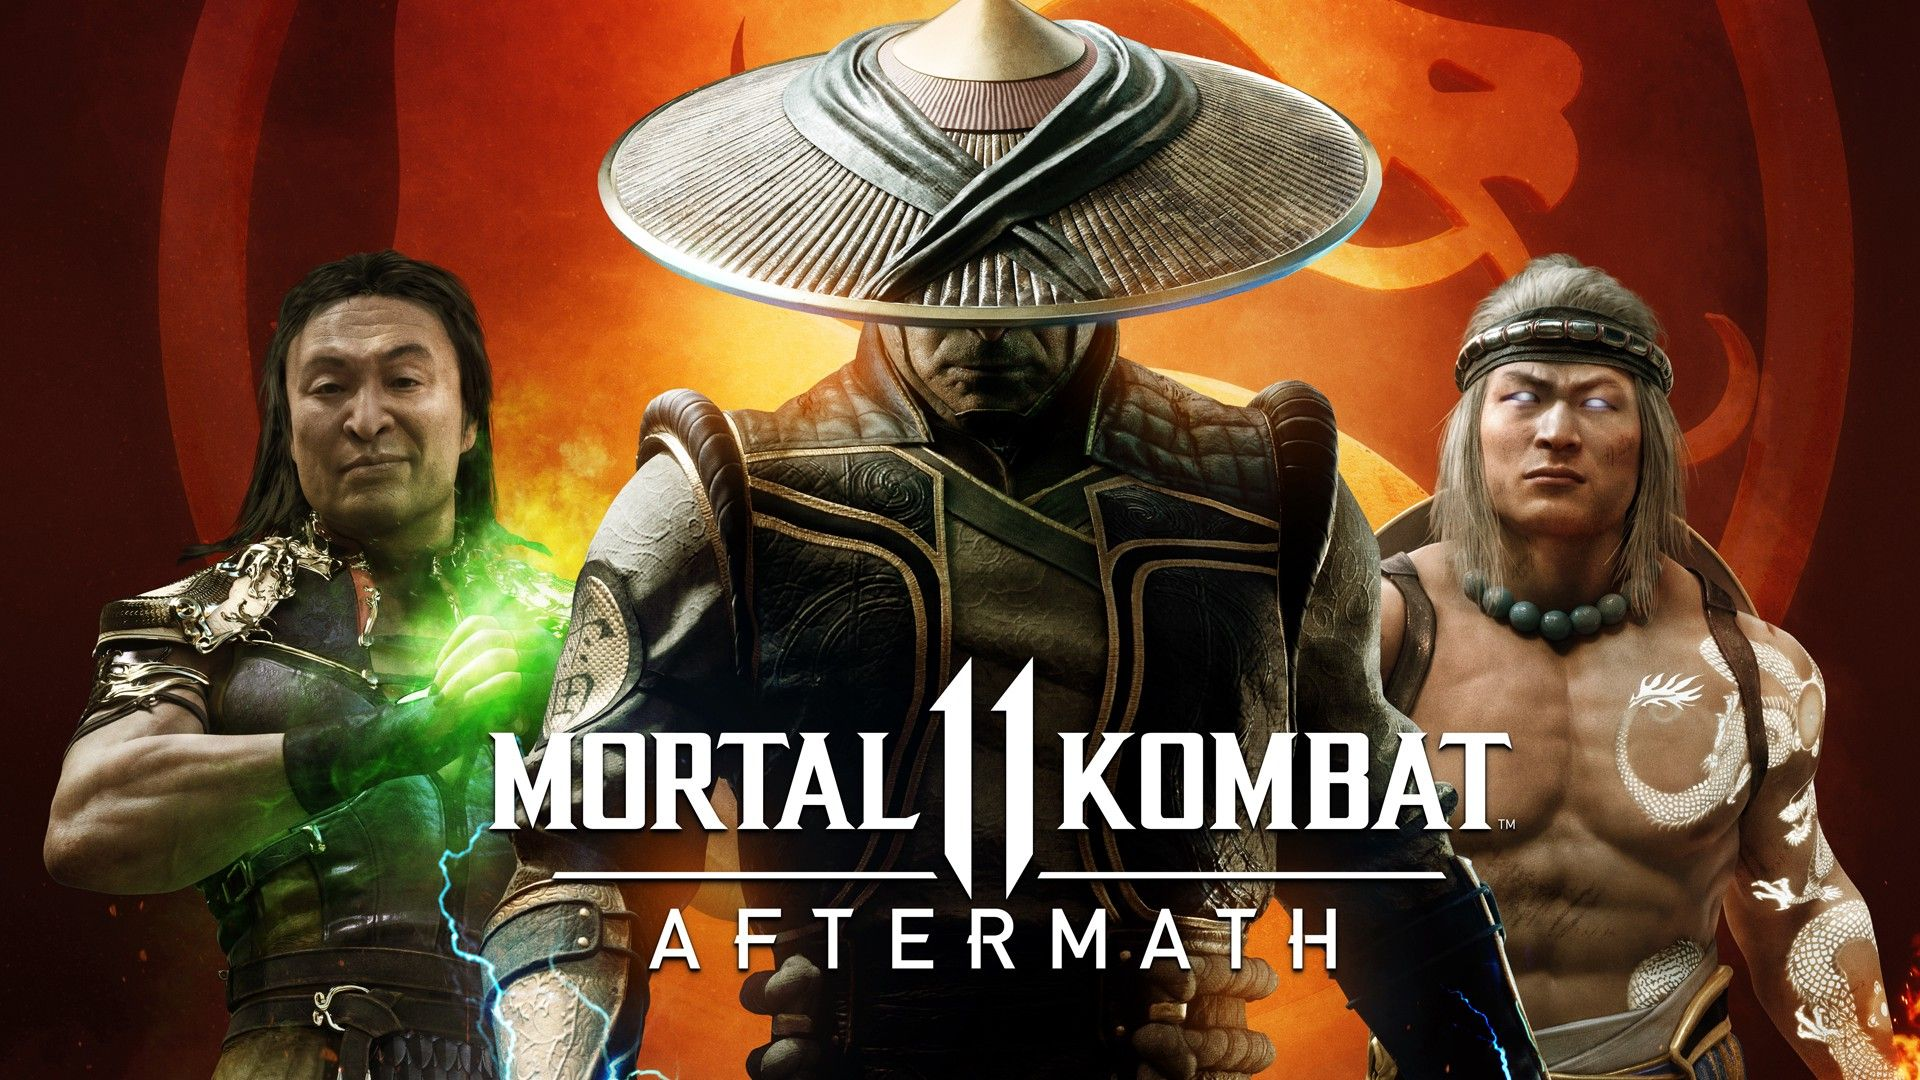 Mortal Kombat 11 dobiva Aftermath ekspanziju